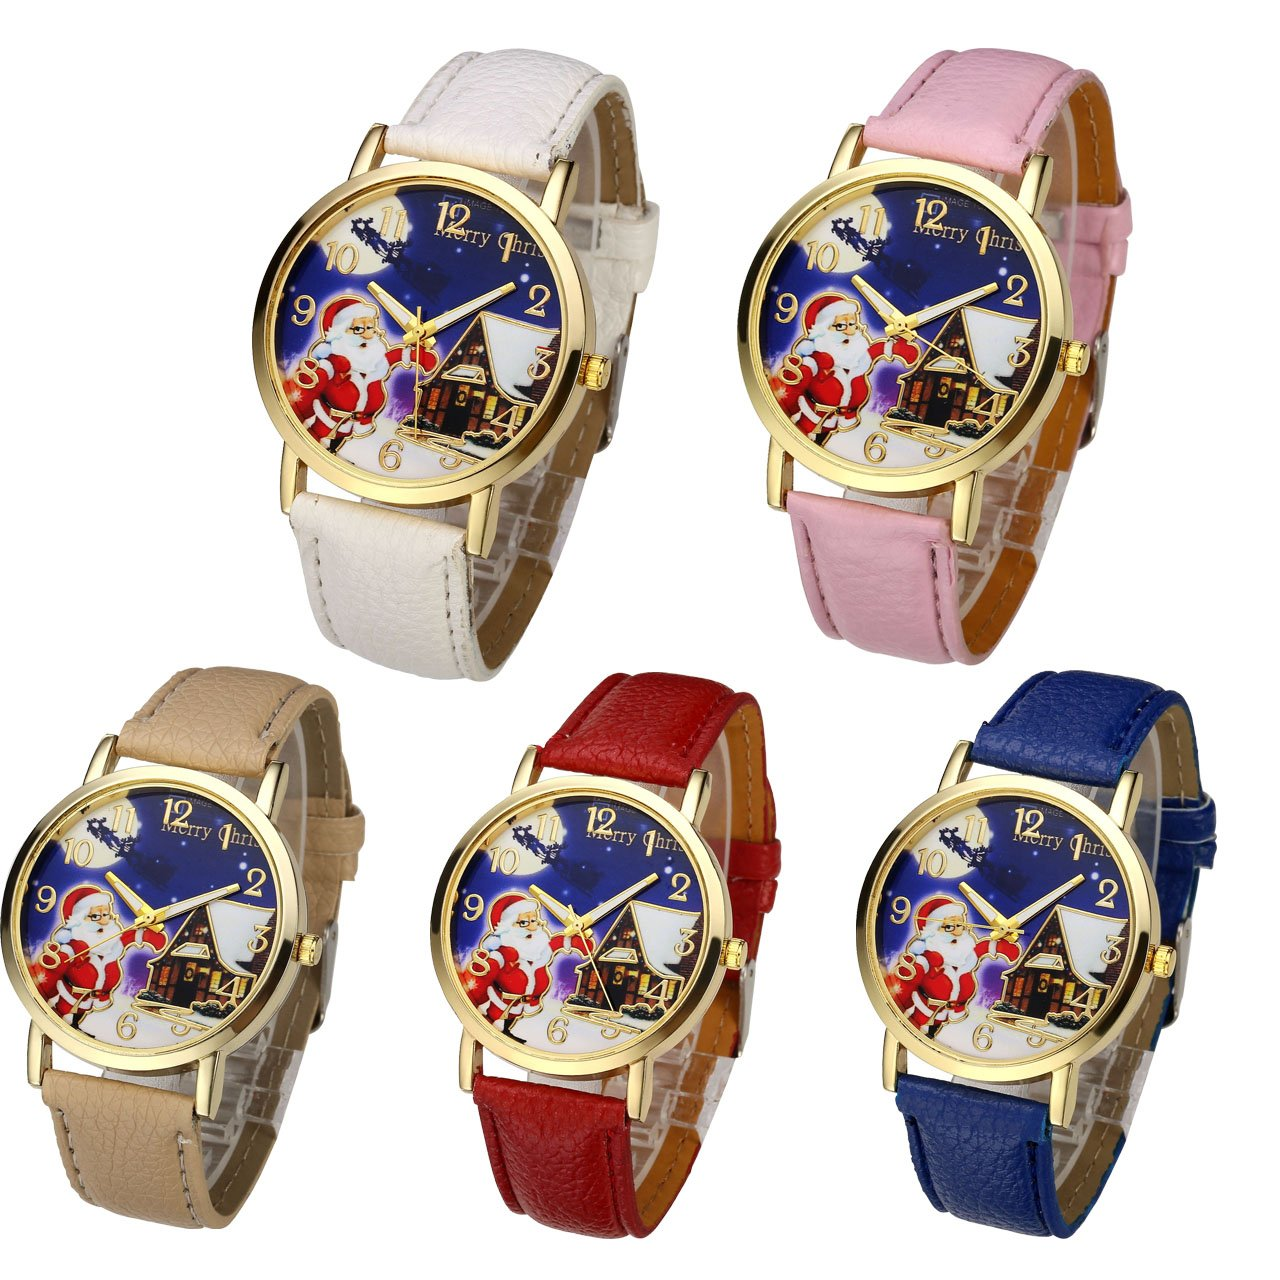 Top Plaza Cute Casual Father Christmas Analog Quartz Watch Santa Claus Pattern PU Leather Band Arabic Numerals Wrist Watch for Kids Children #5(Pack of 5)